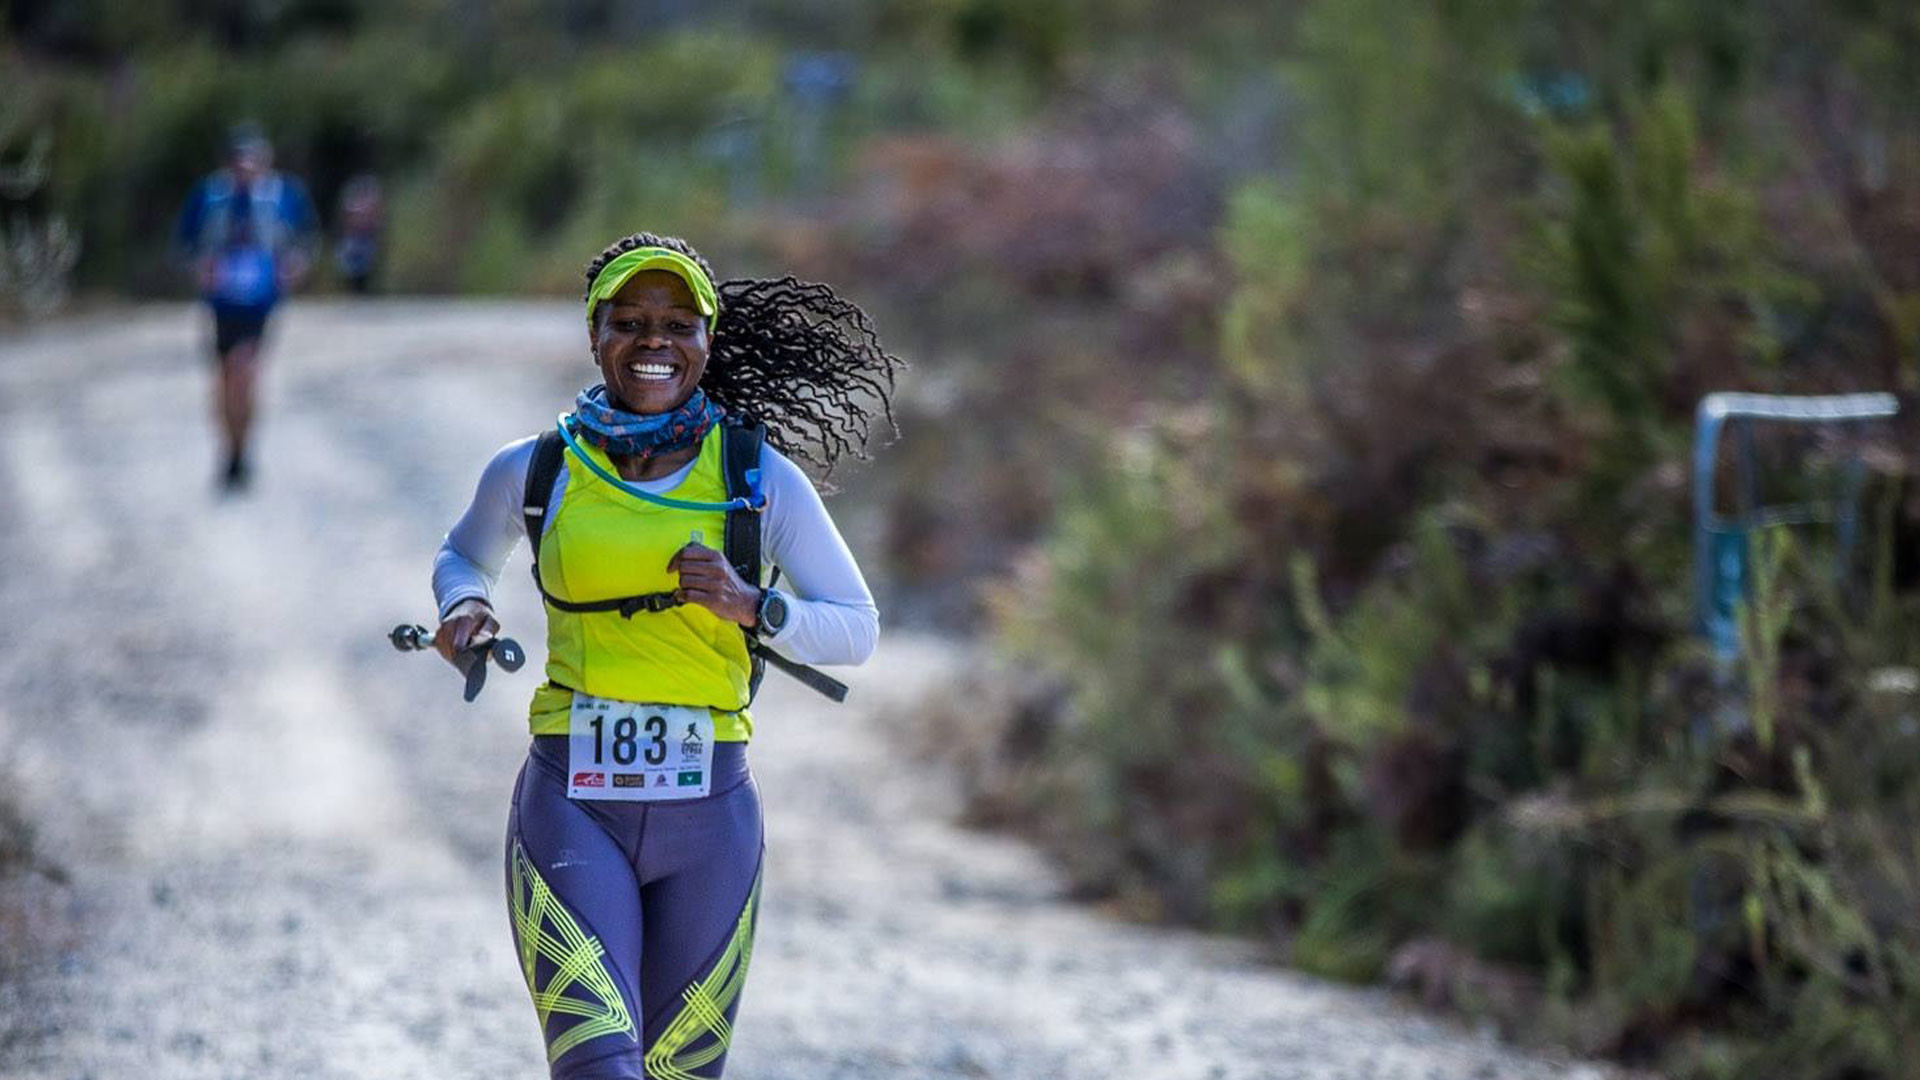 Nontuthuko Mgabhi from Richards Bay aims to be the first woman from Africa to run the World Marathon Challenge